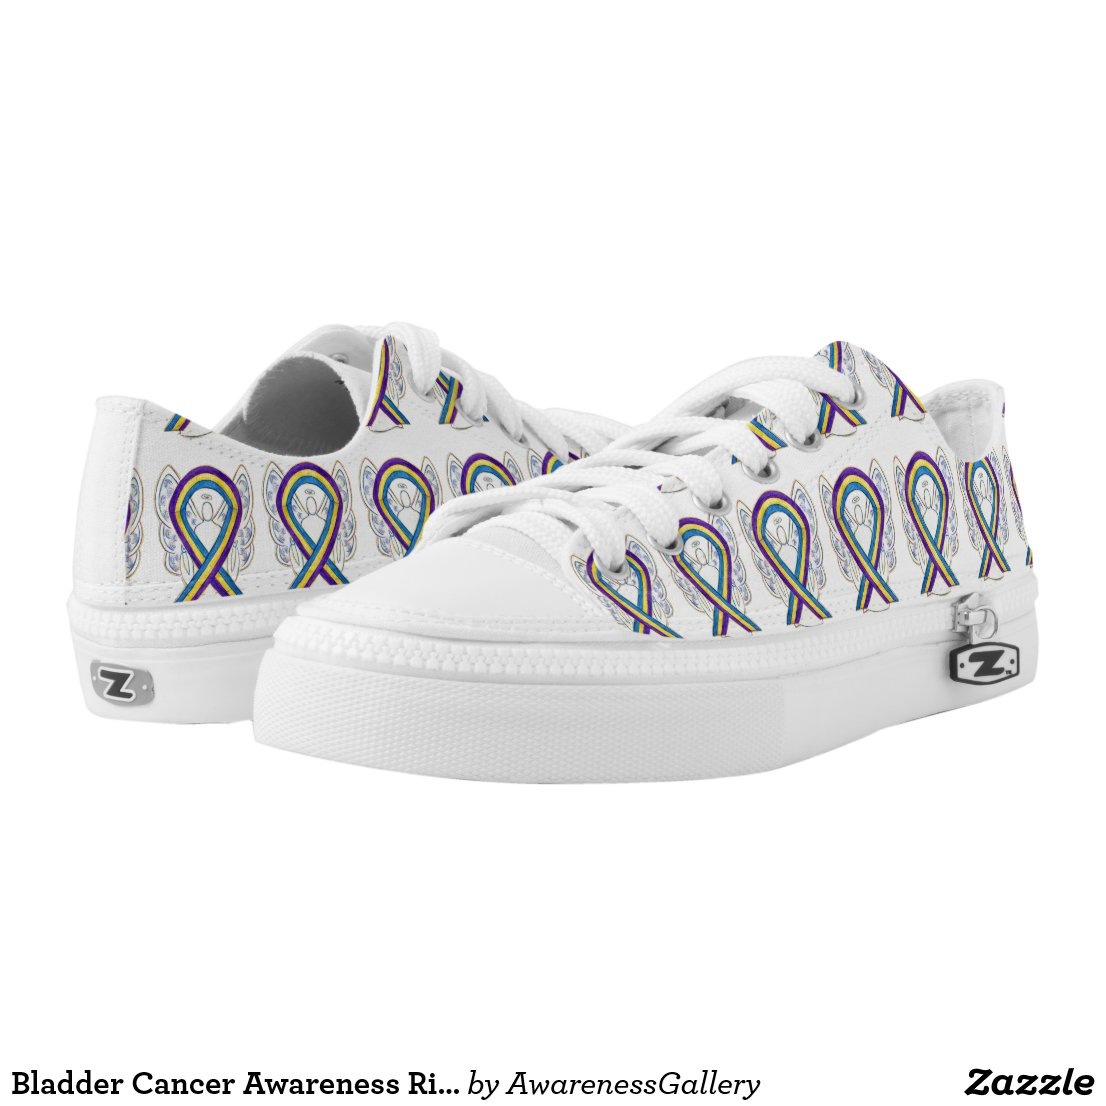 Bladder Cancer Awareness Ribbon Angel Sneakers